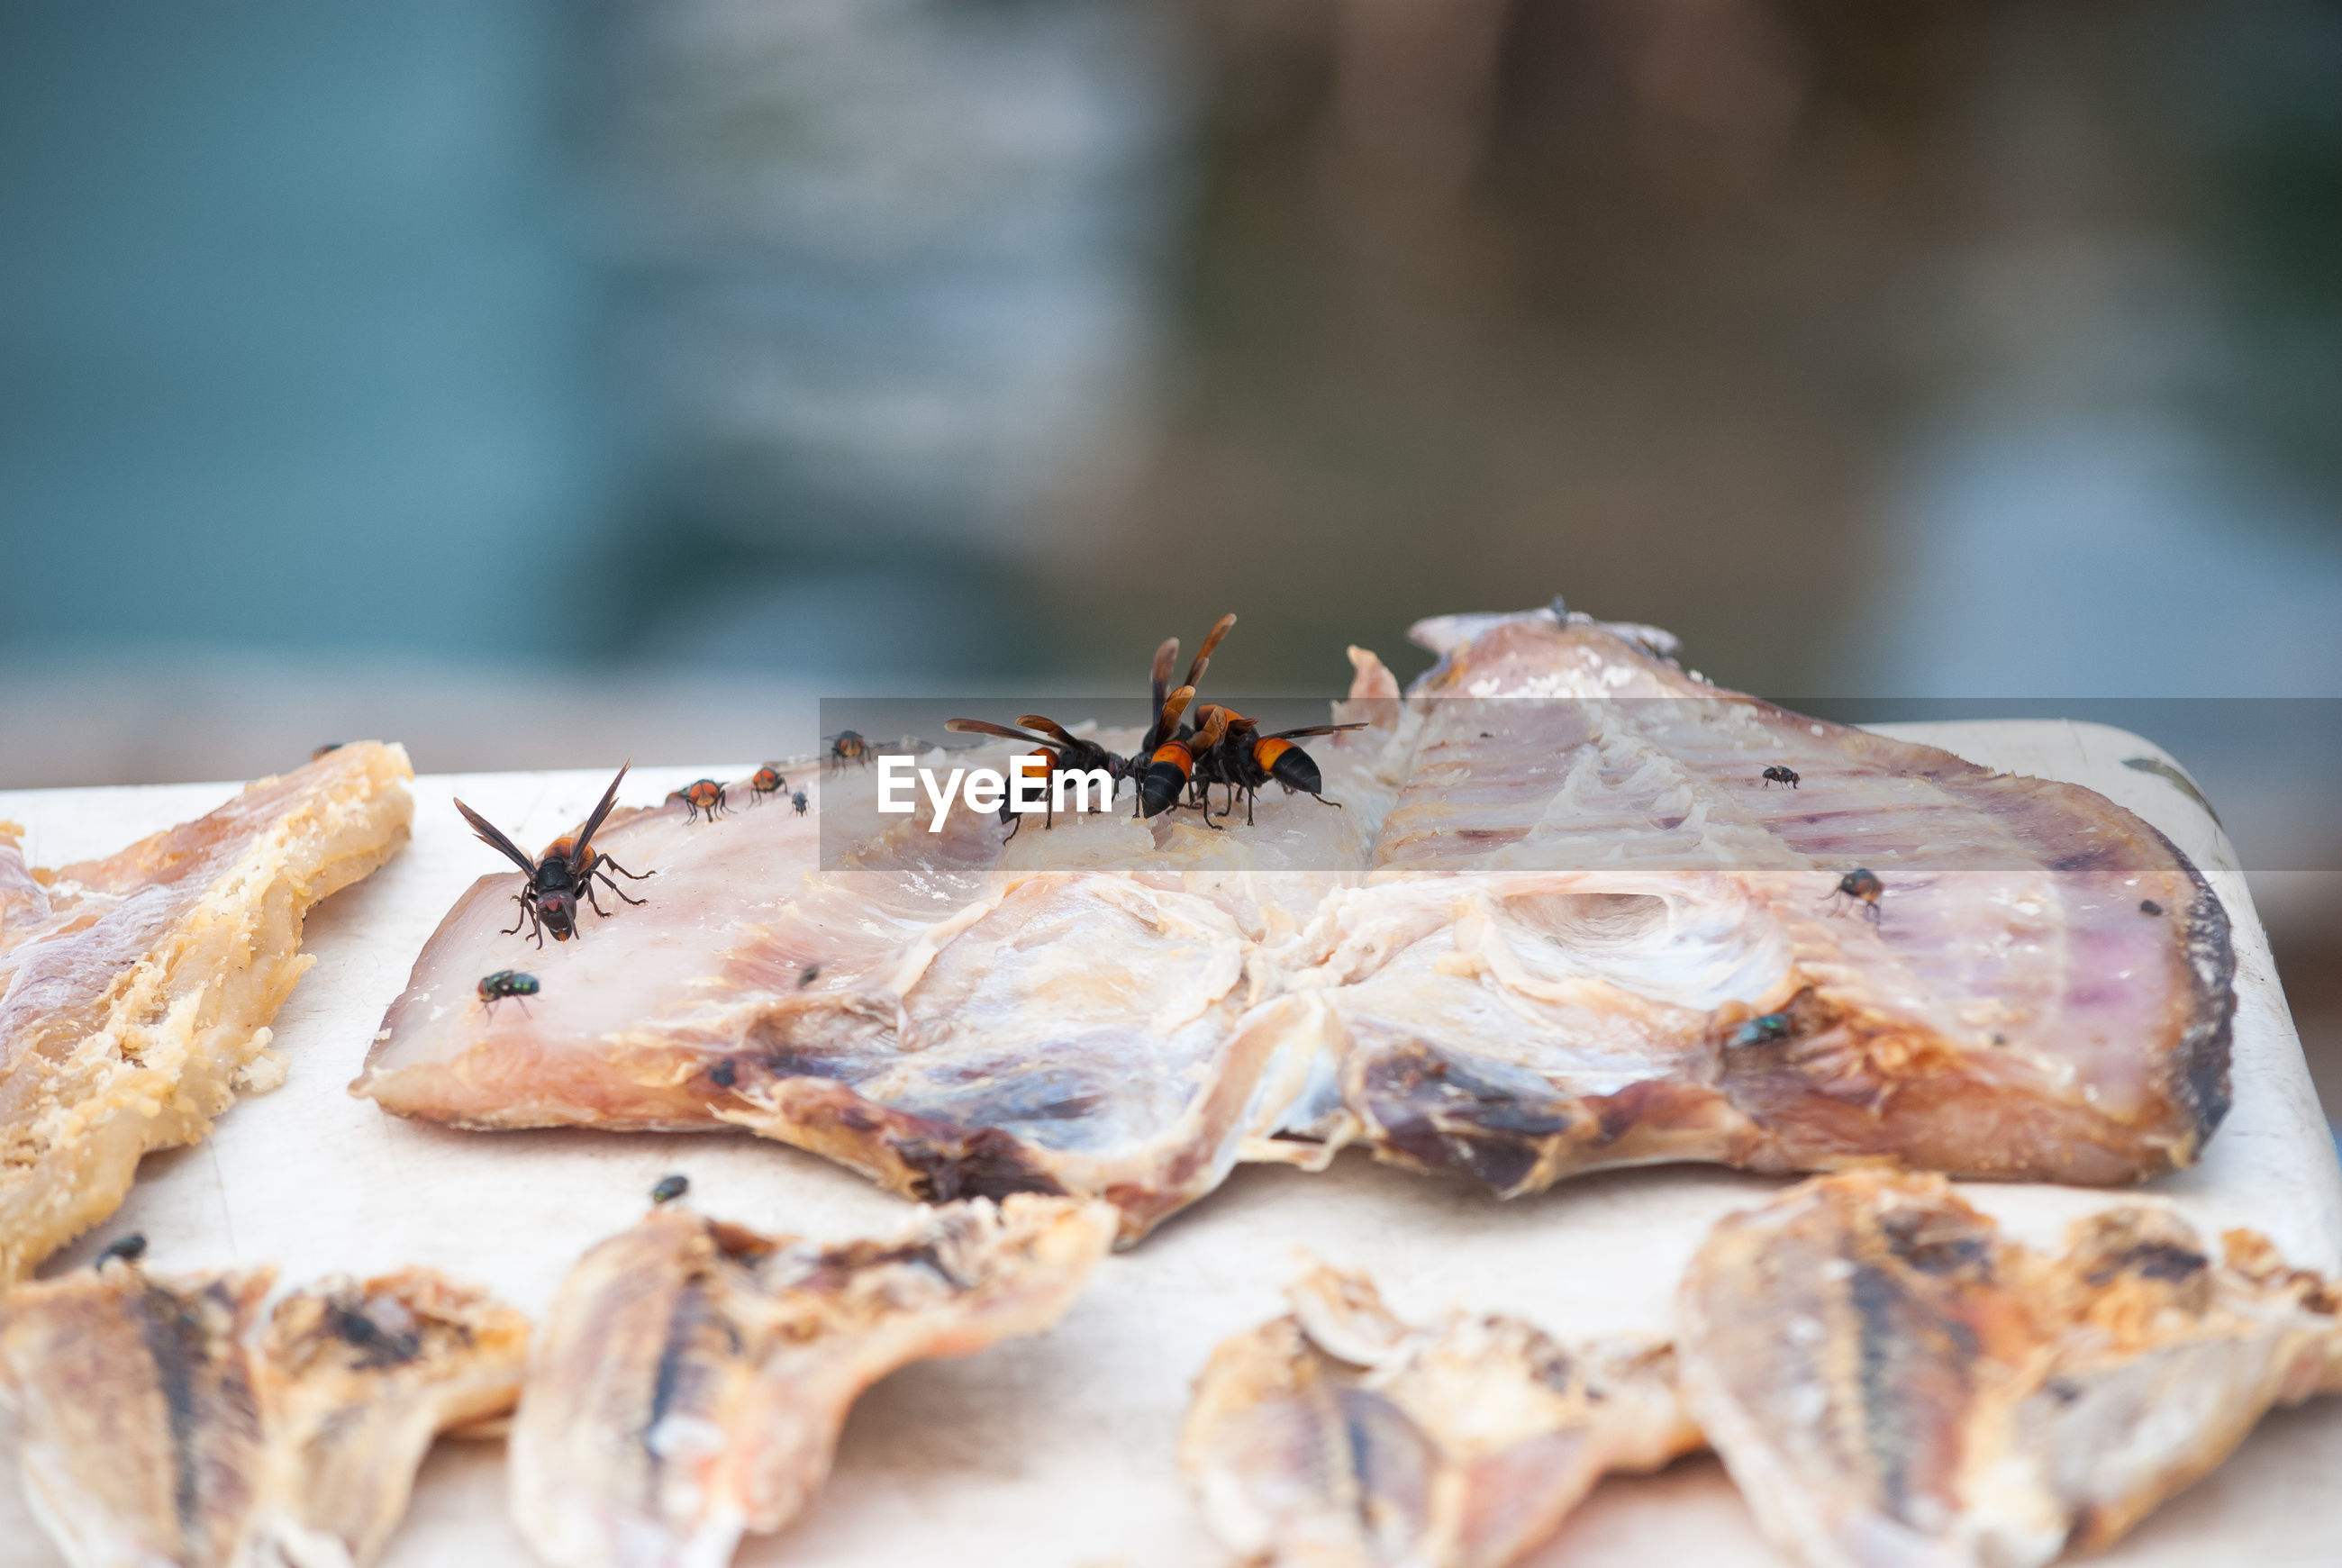 Close-up of insects on dried fish